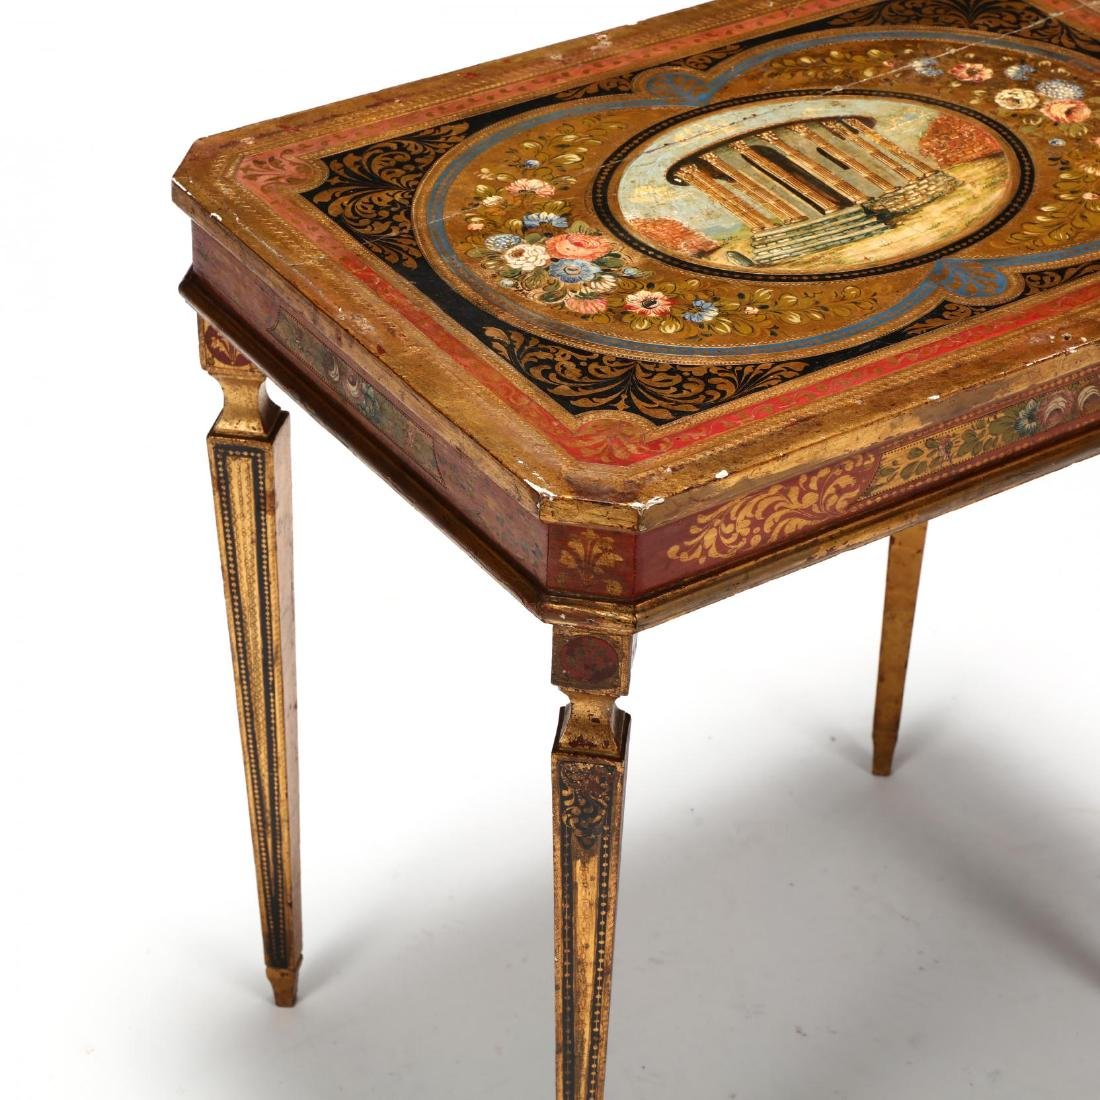 Vintage Florentine Painted and Gilt Table - 3